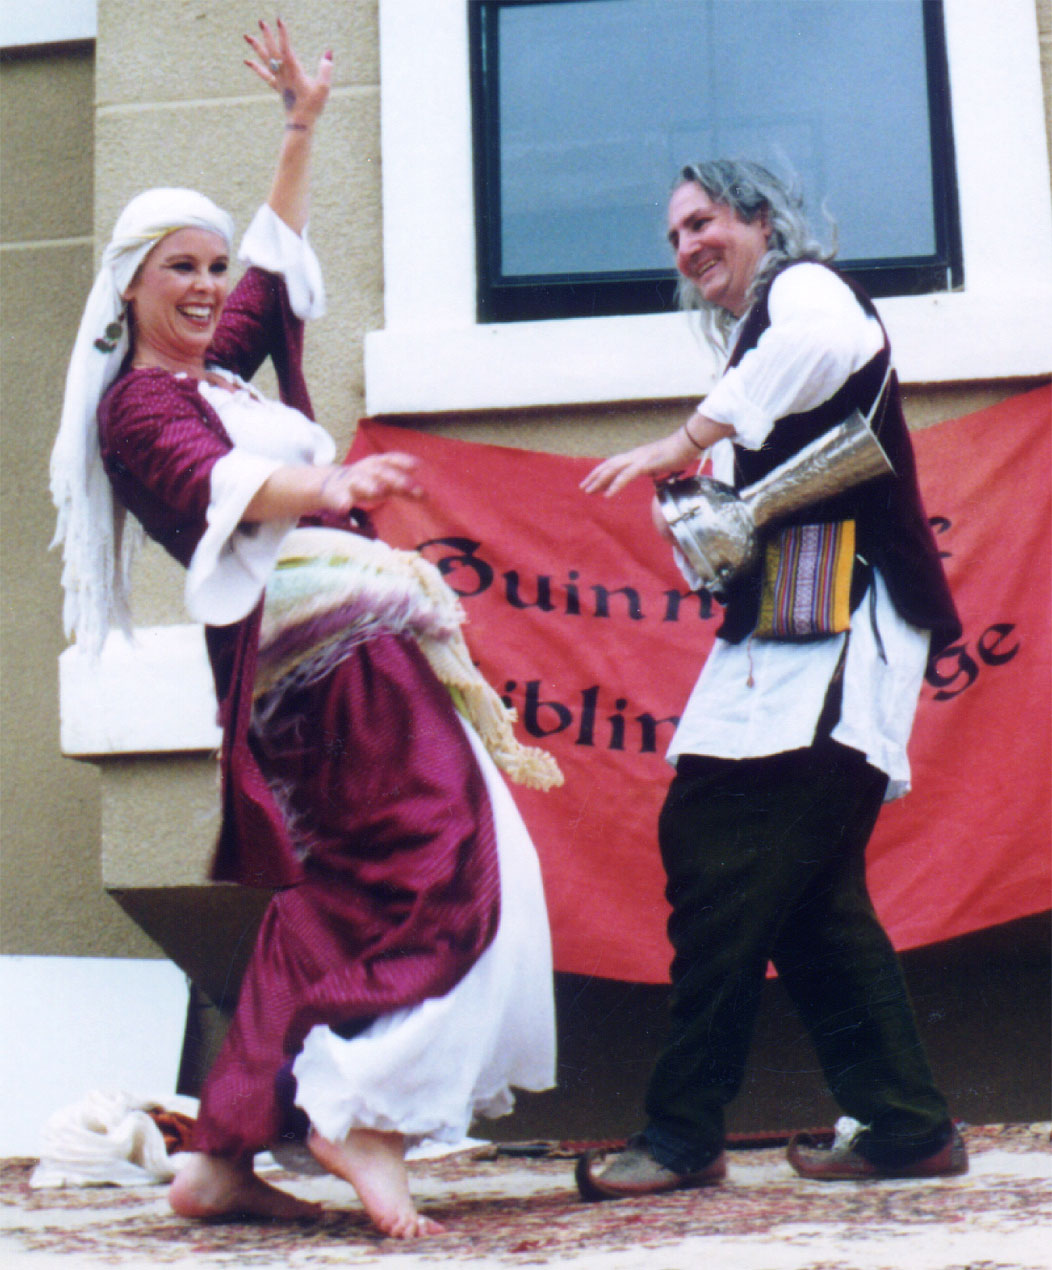 2001Del Mar Seaside Rennaisance and Fantasy Faire, Del Mar Fairgrouds (drumming for Titanya)